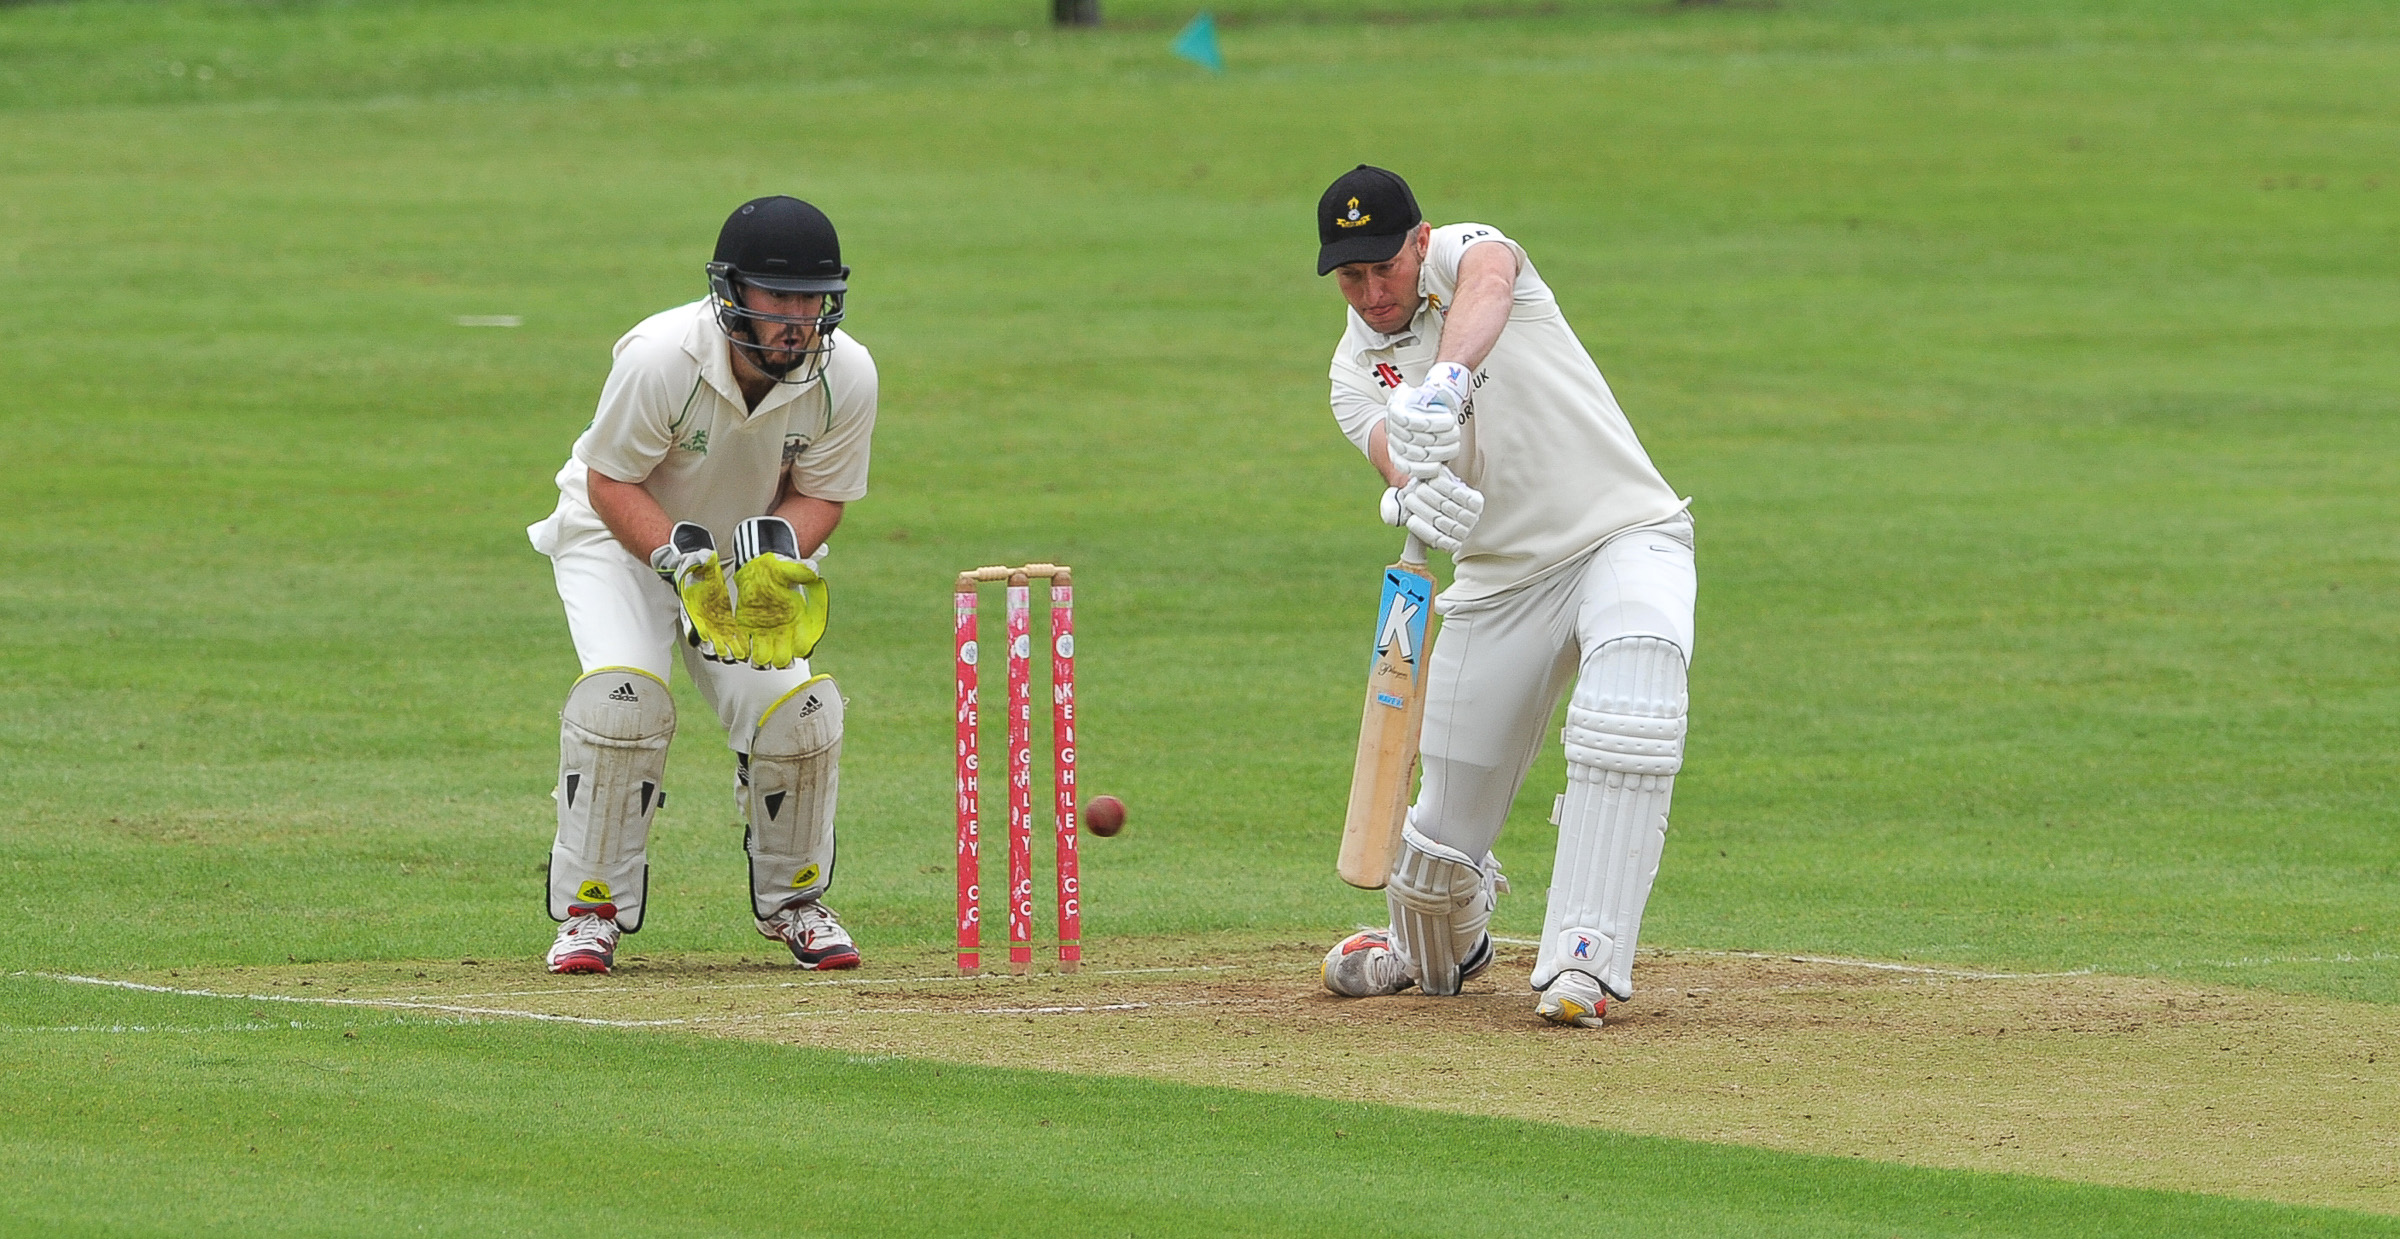 Andrew Pickering top-scored for Yeadon with 45